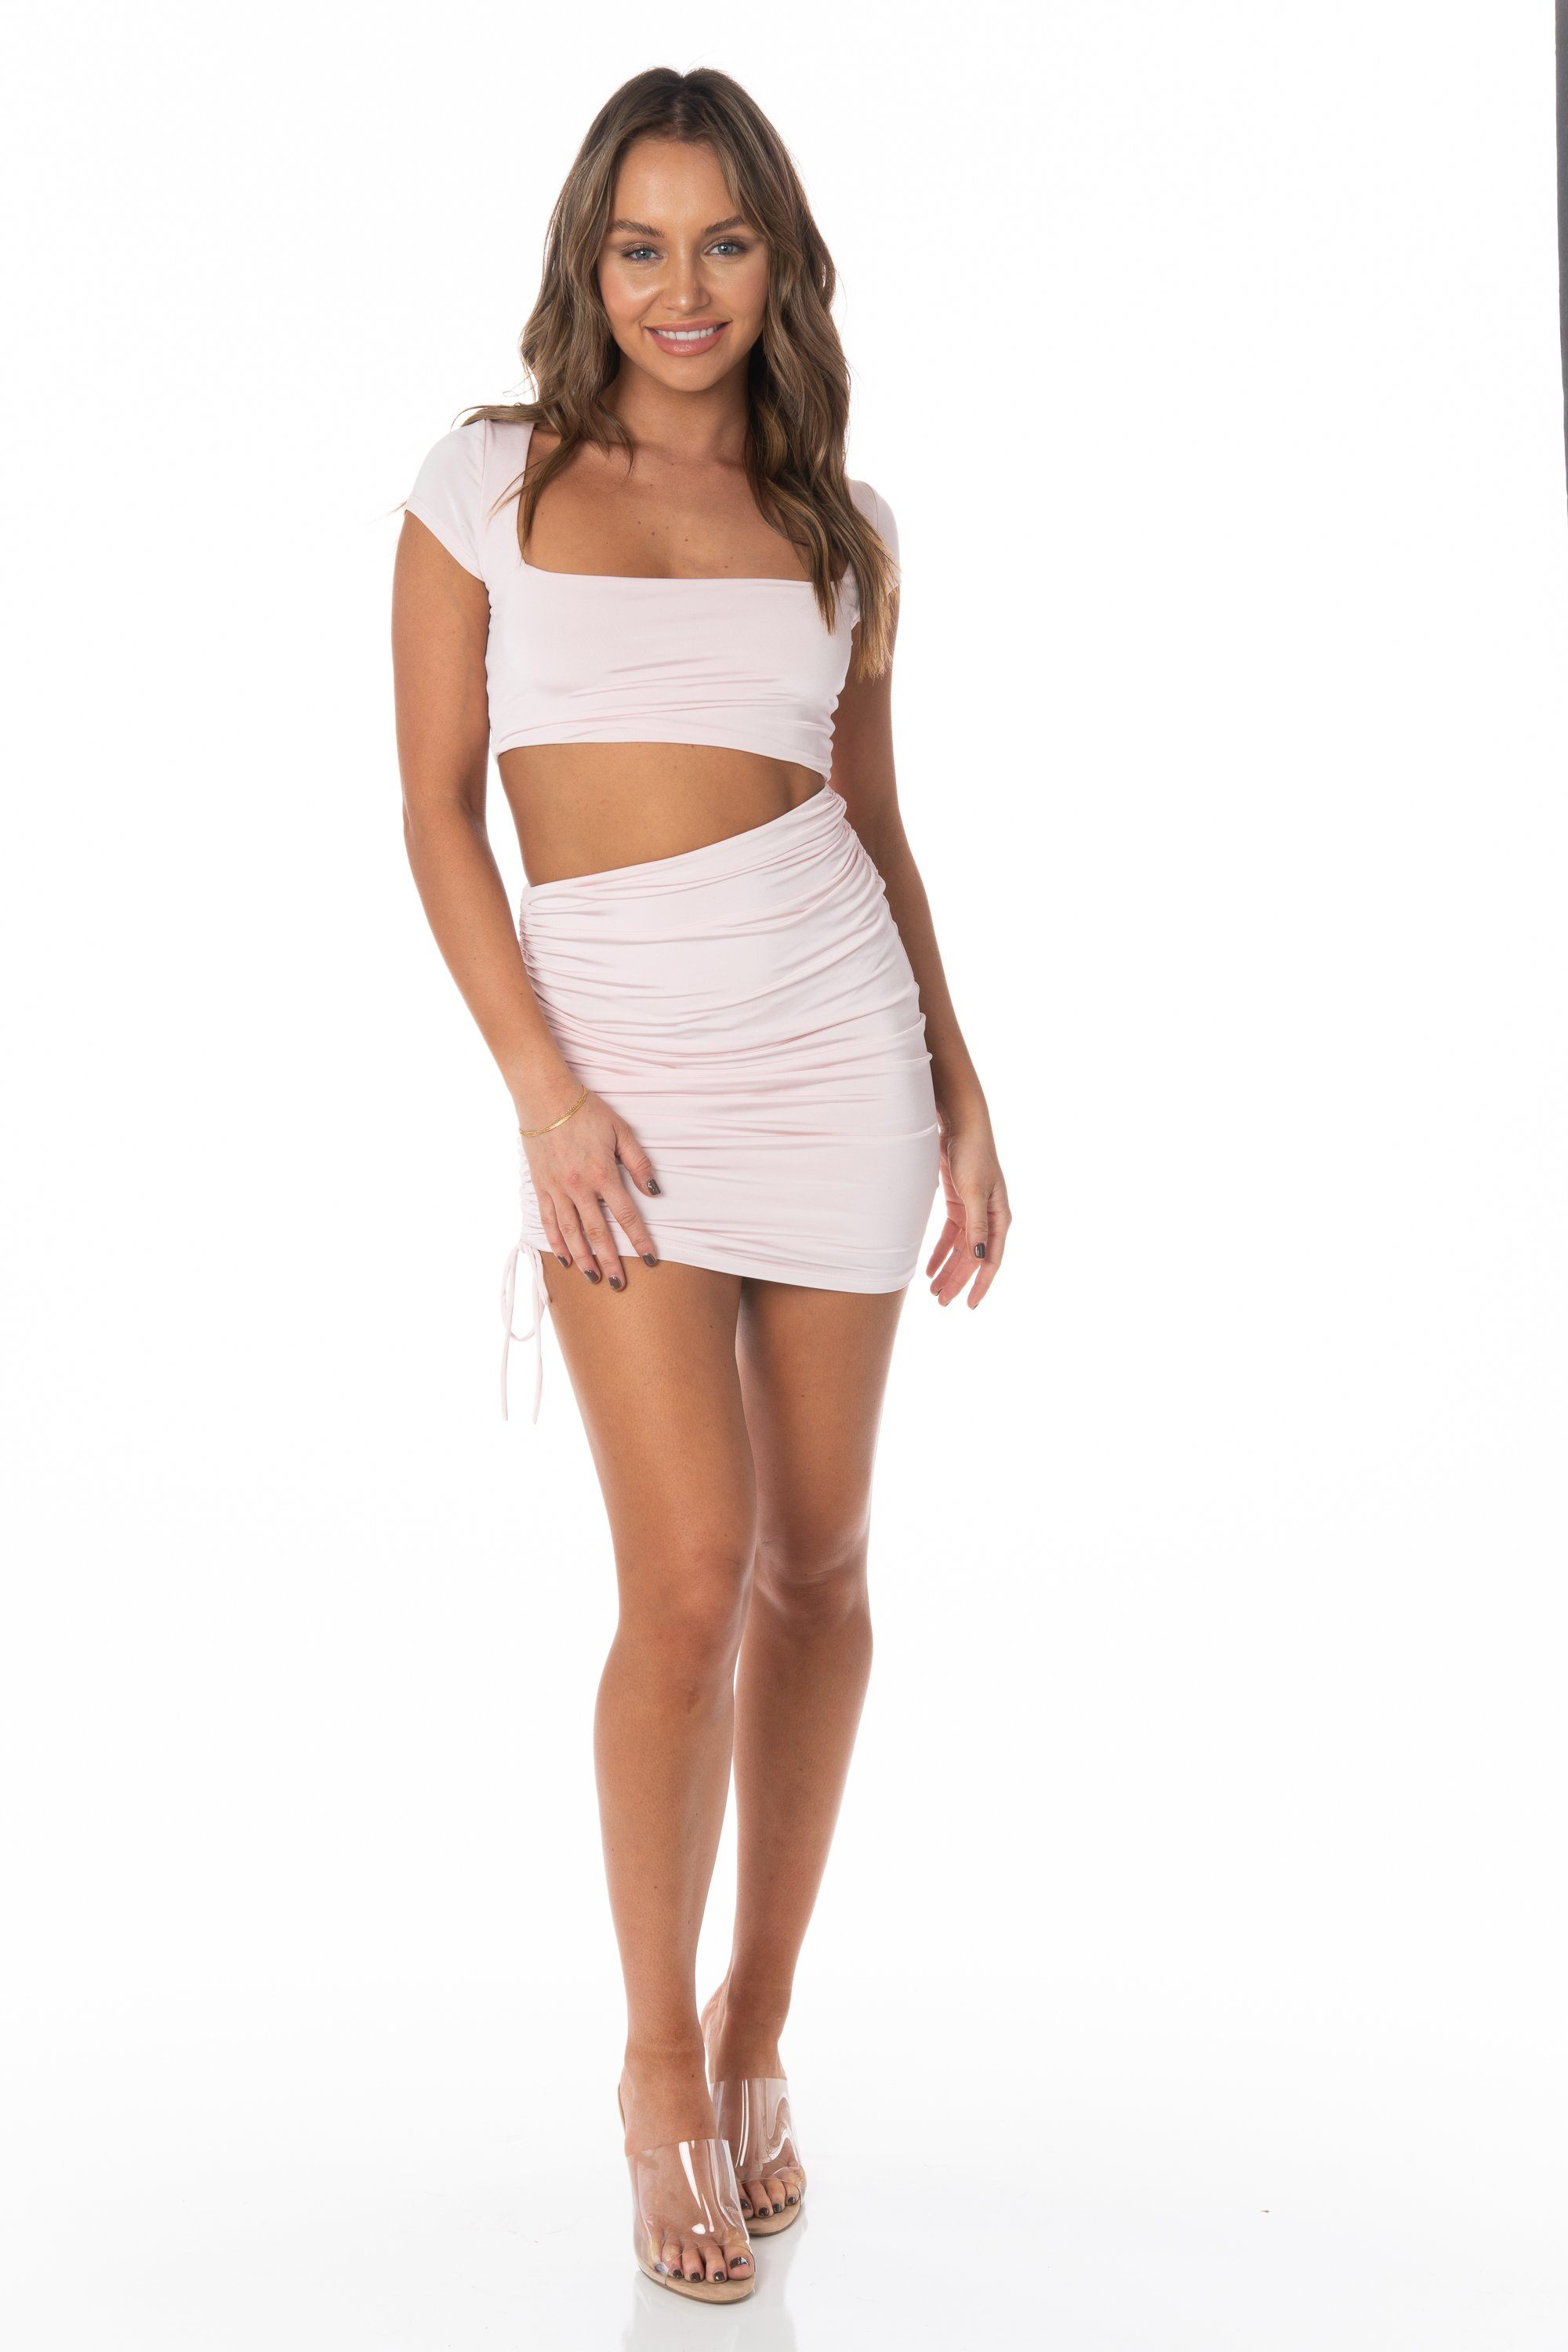 Rose All Day Bodycon Dress Dresses HYPEACH BOUTIQUE